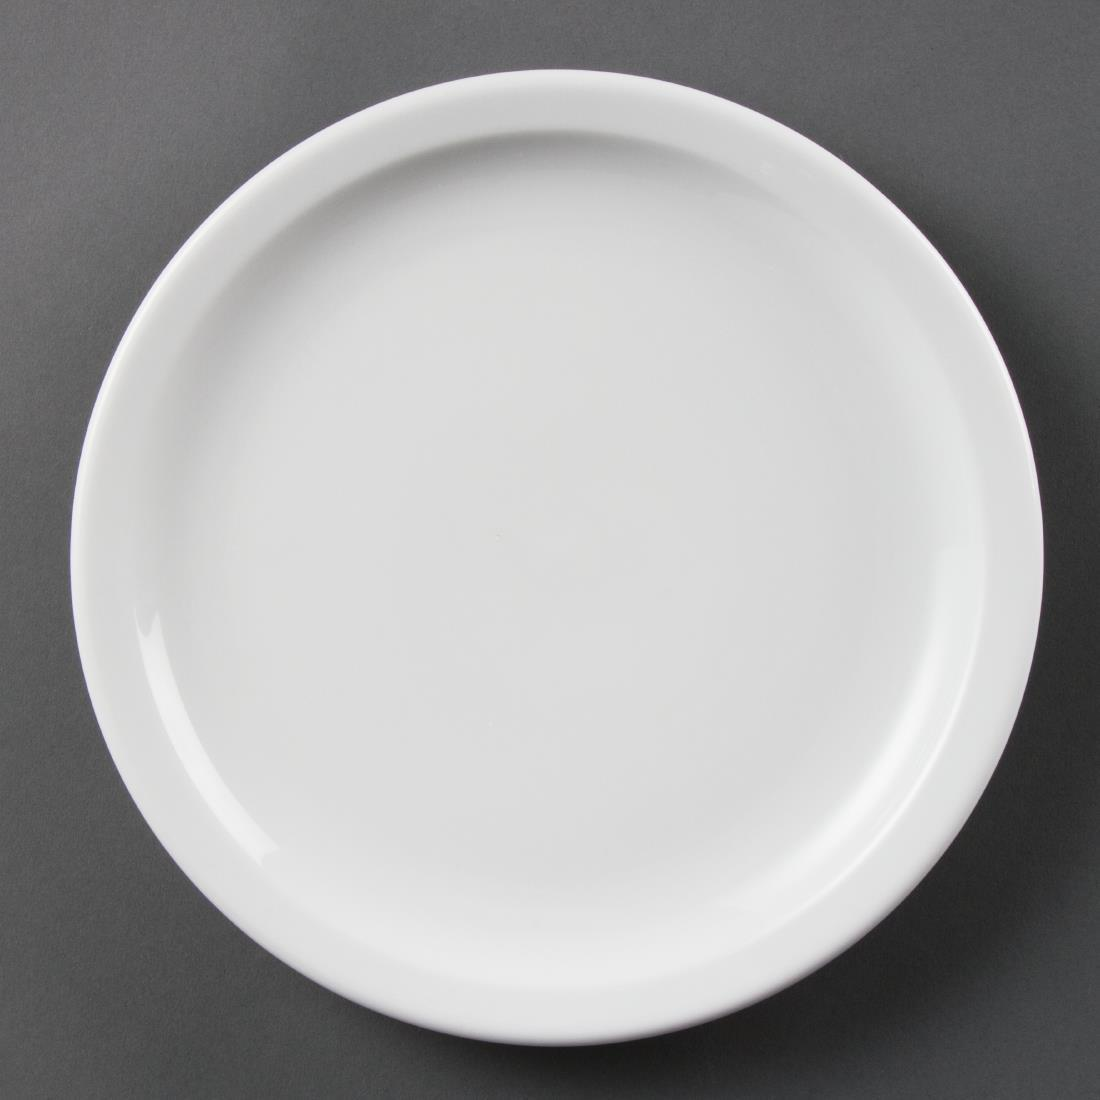 Olympia Whiteware Narrow Rimmed Plates 230mm